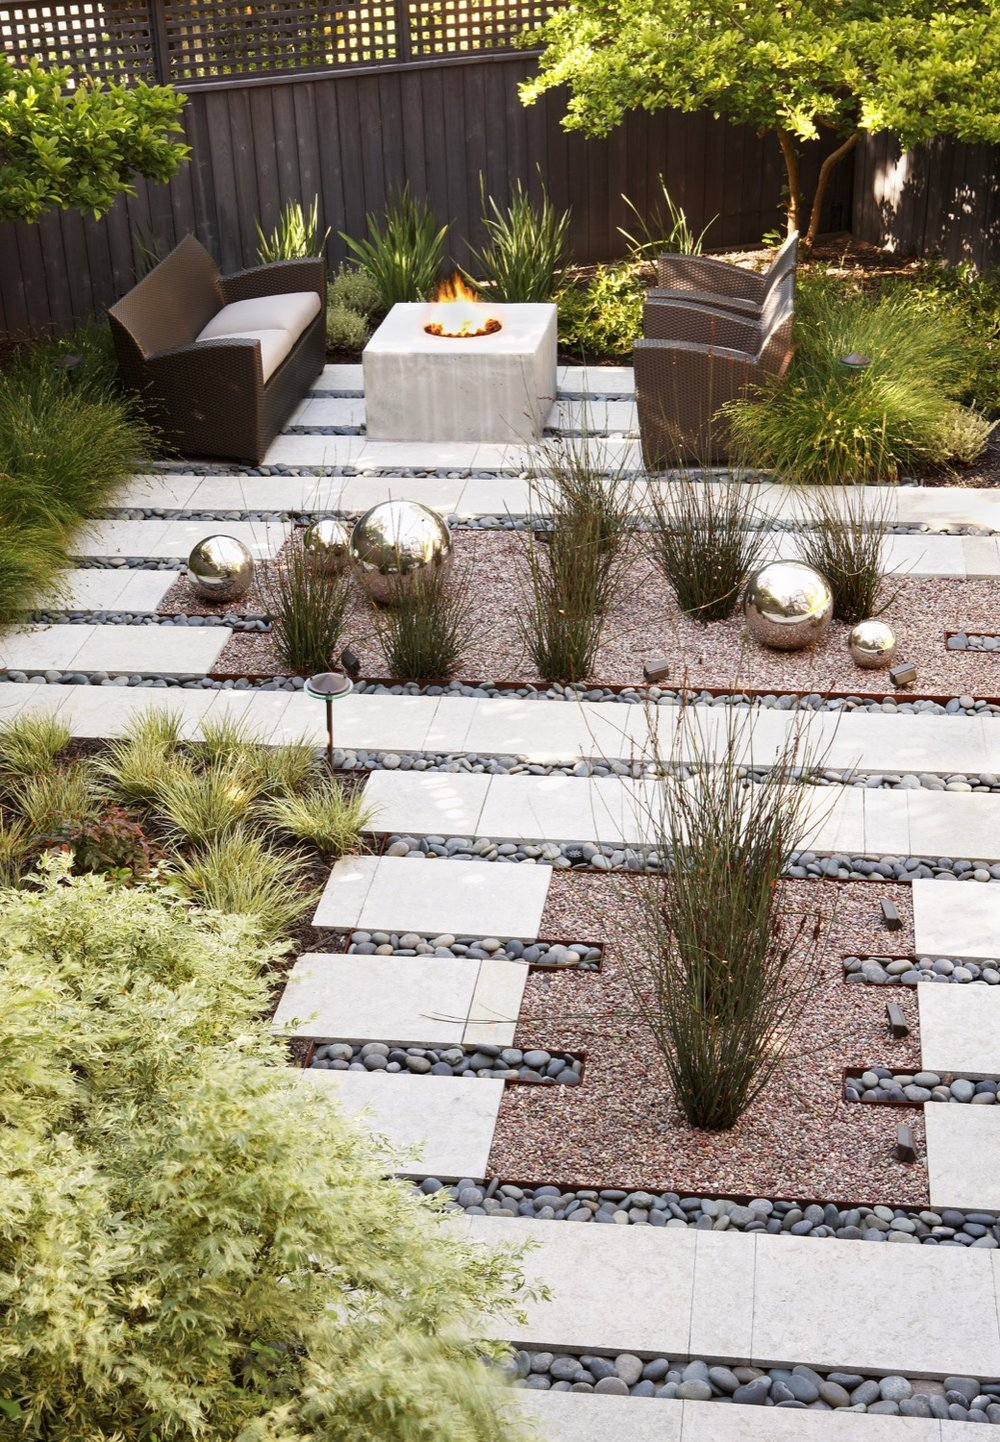 A concrete firepit is a gathering place in the far corner of the garden.